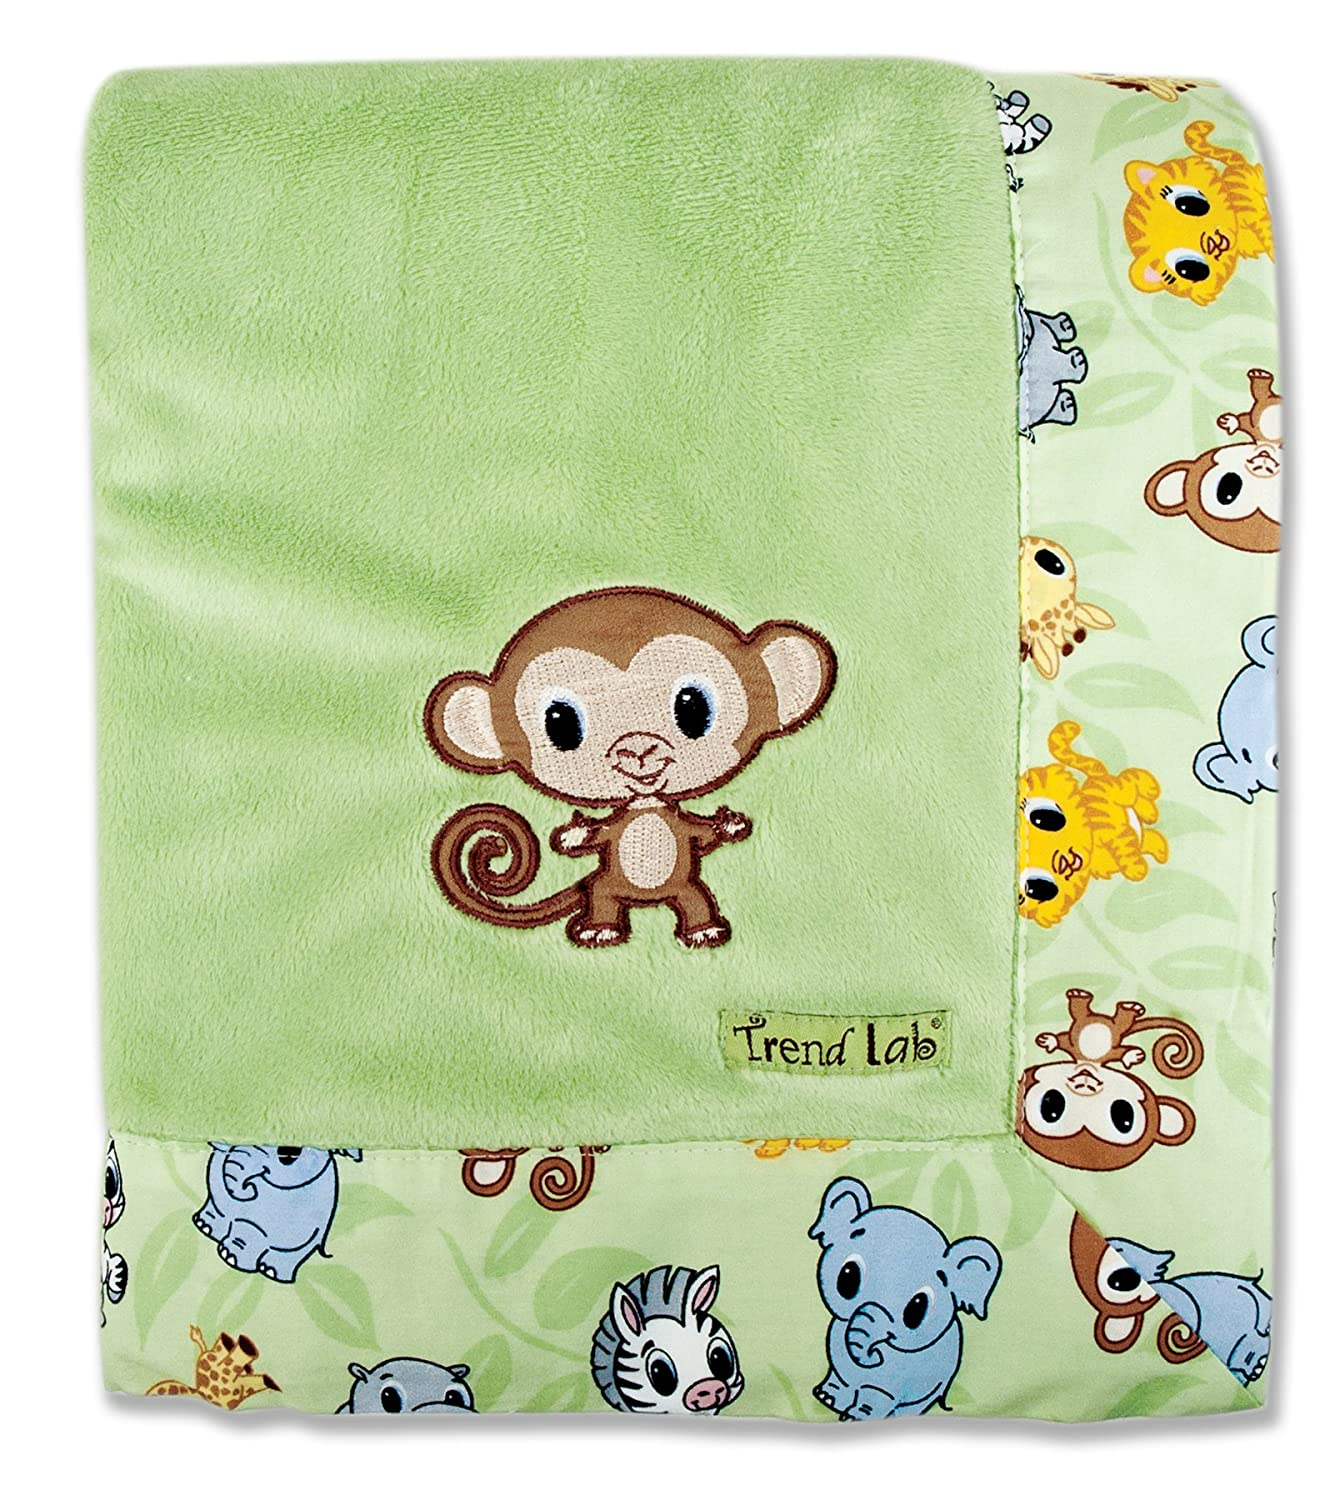 Trend Lab Blanket With Embroidery Chibi Velour